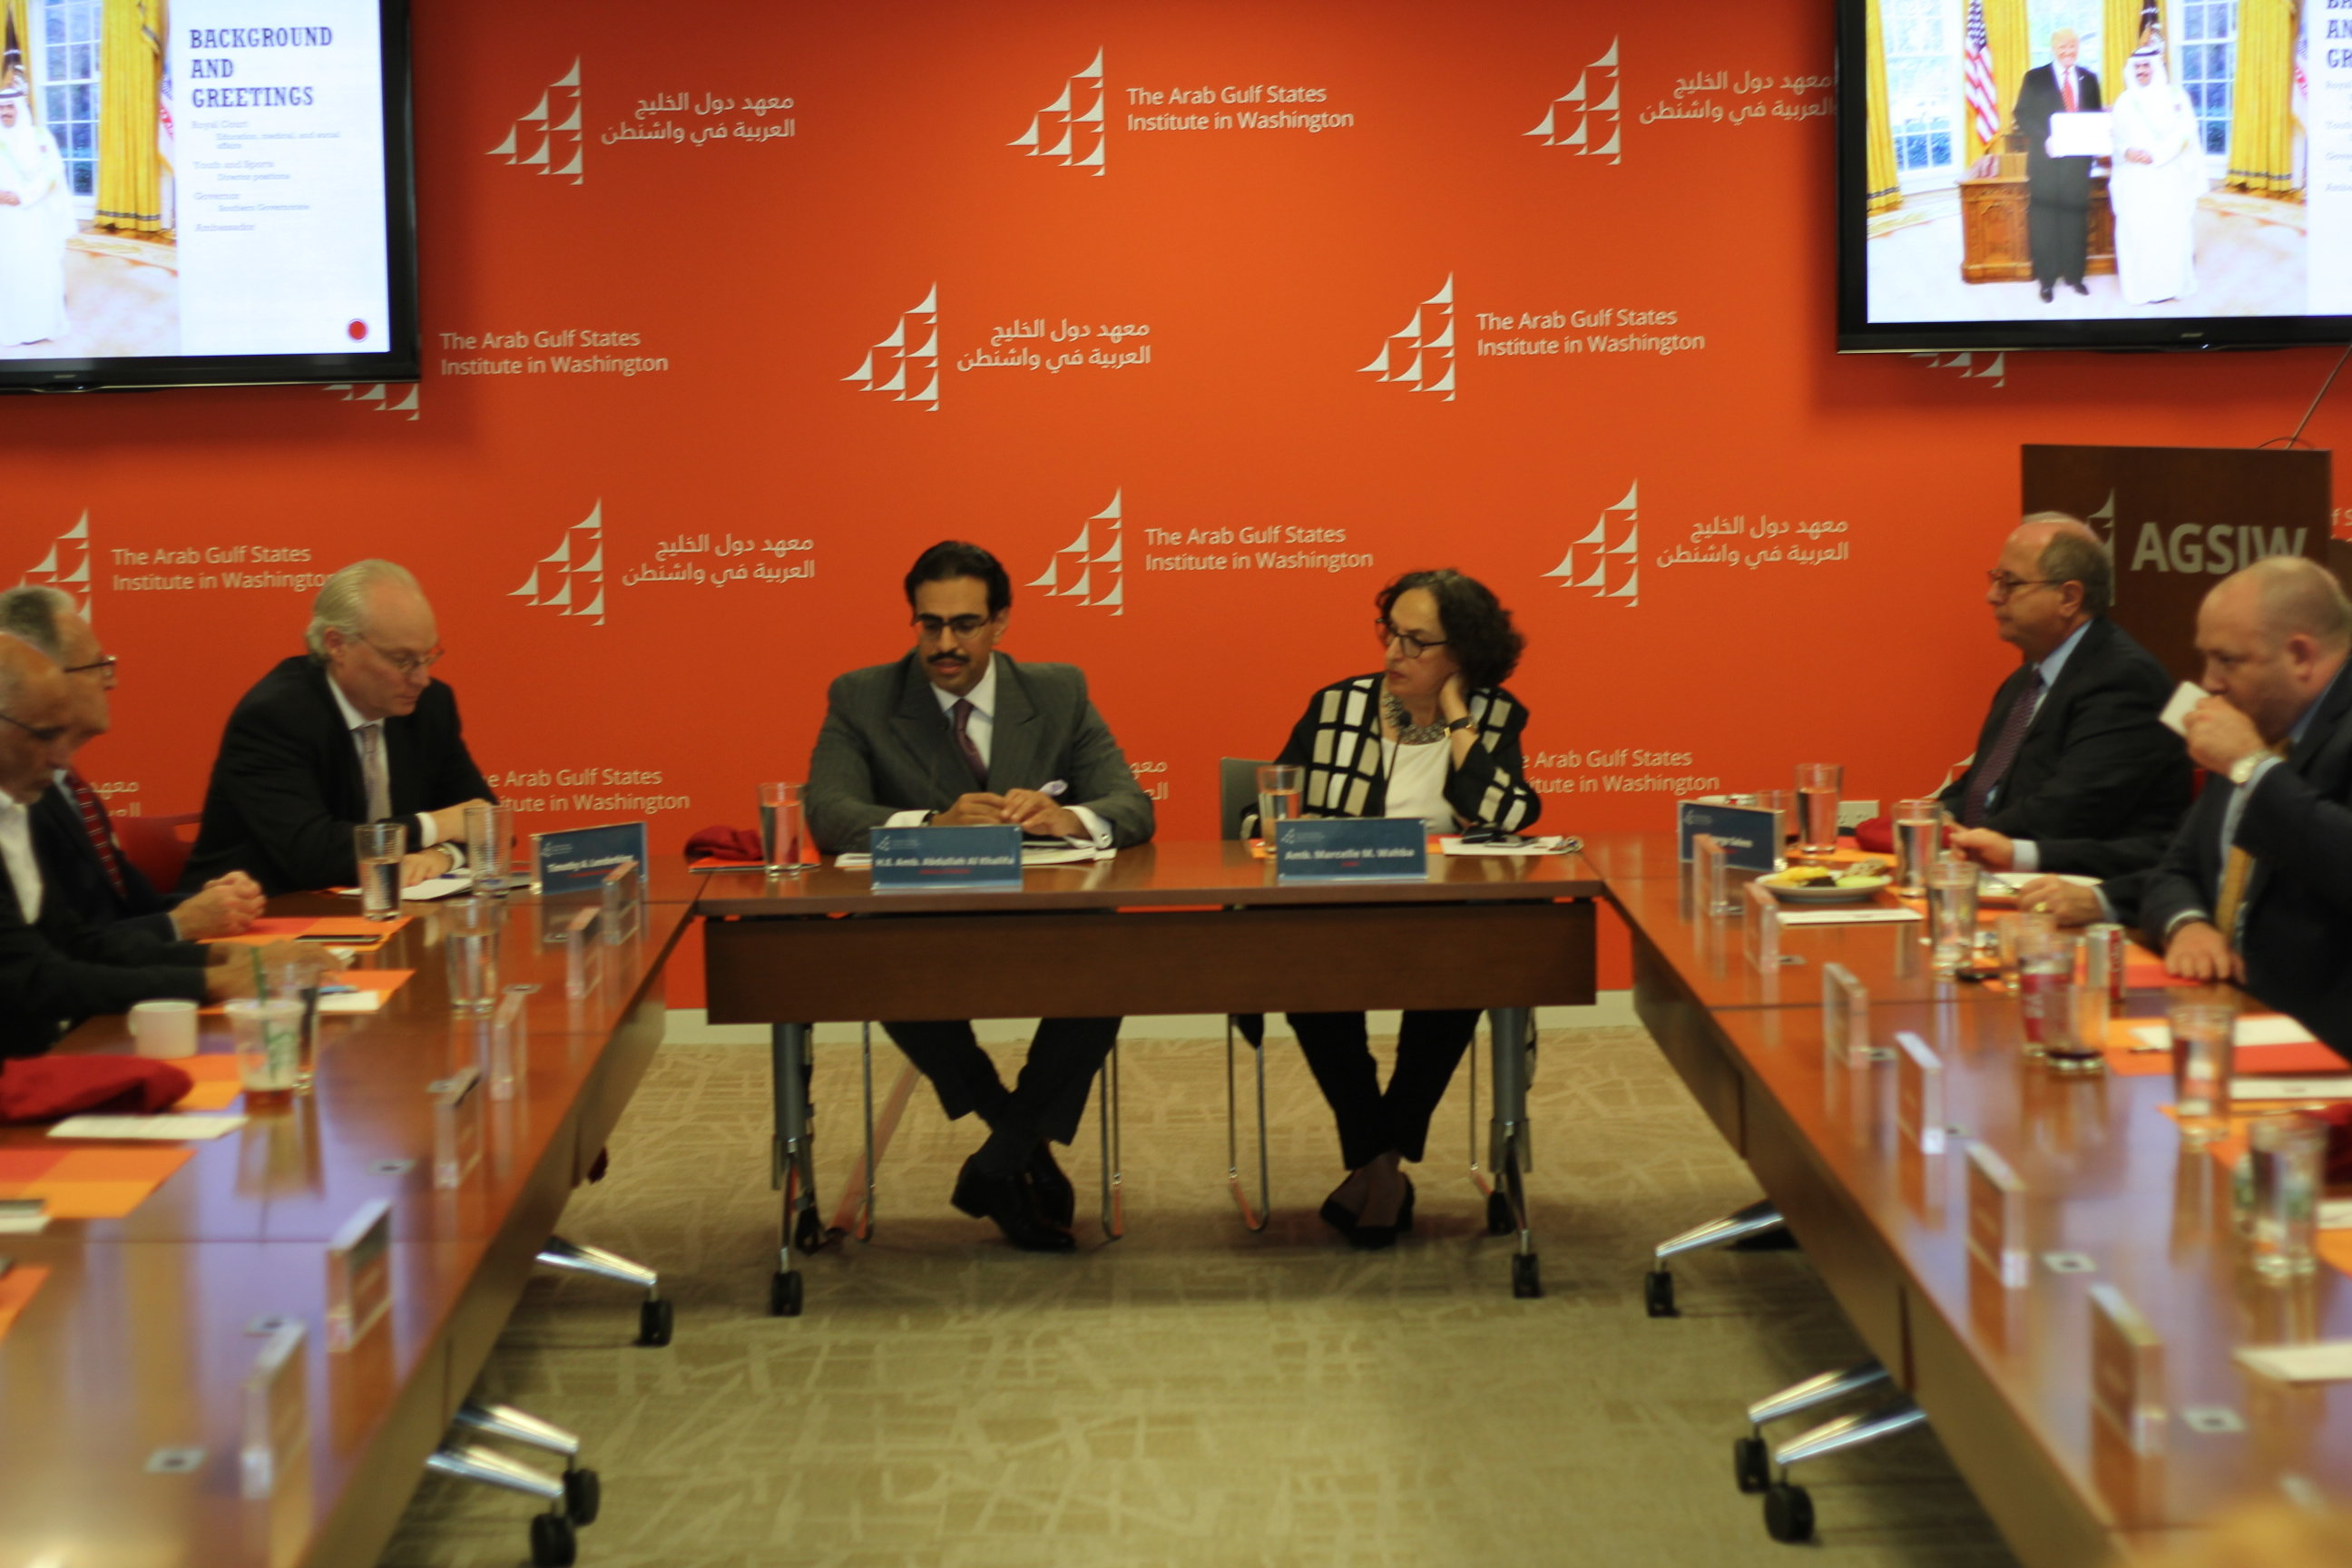 Ambassador of Bahrain to the United States at AGSIW